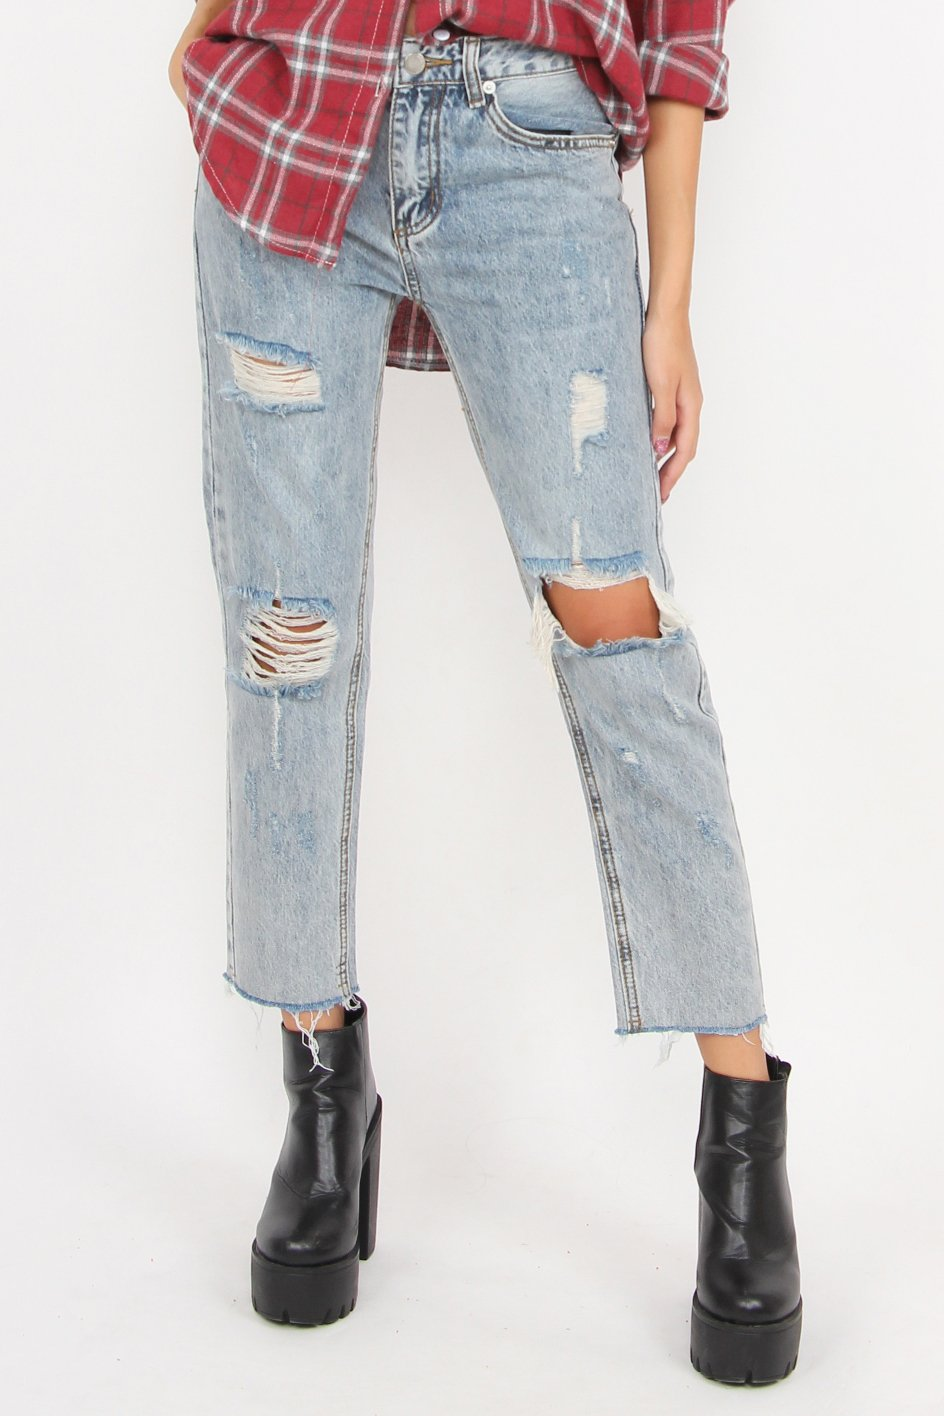 Cut Out Shredded Jeans